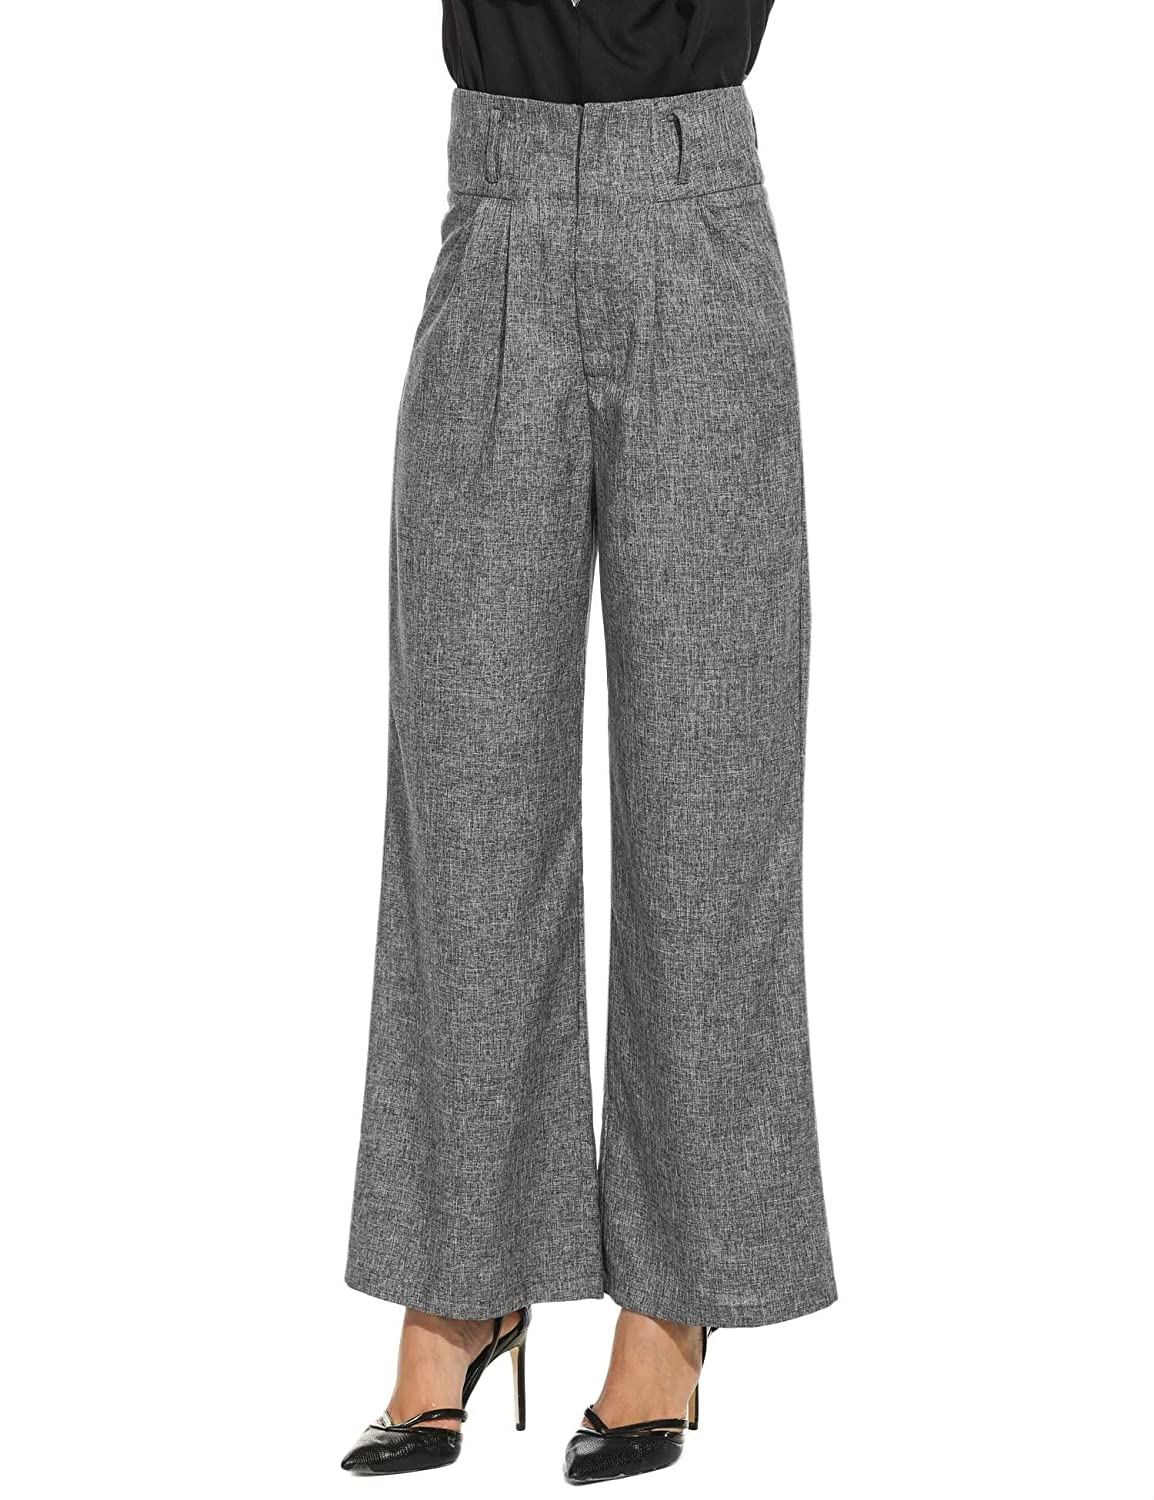 1940s Pants History- Overalls, Jeans, Sailor, Siren Suits Zeagoo Womens Casual Superline Wide Flare Leg High Waist Zipper Solid Long Pants $27.99 AT vintagedancer.com